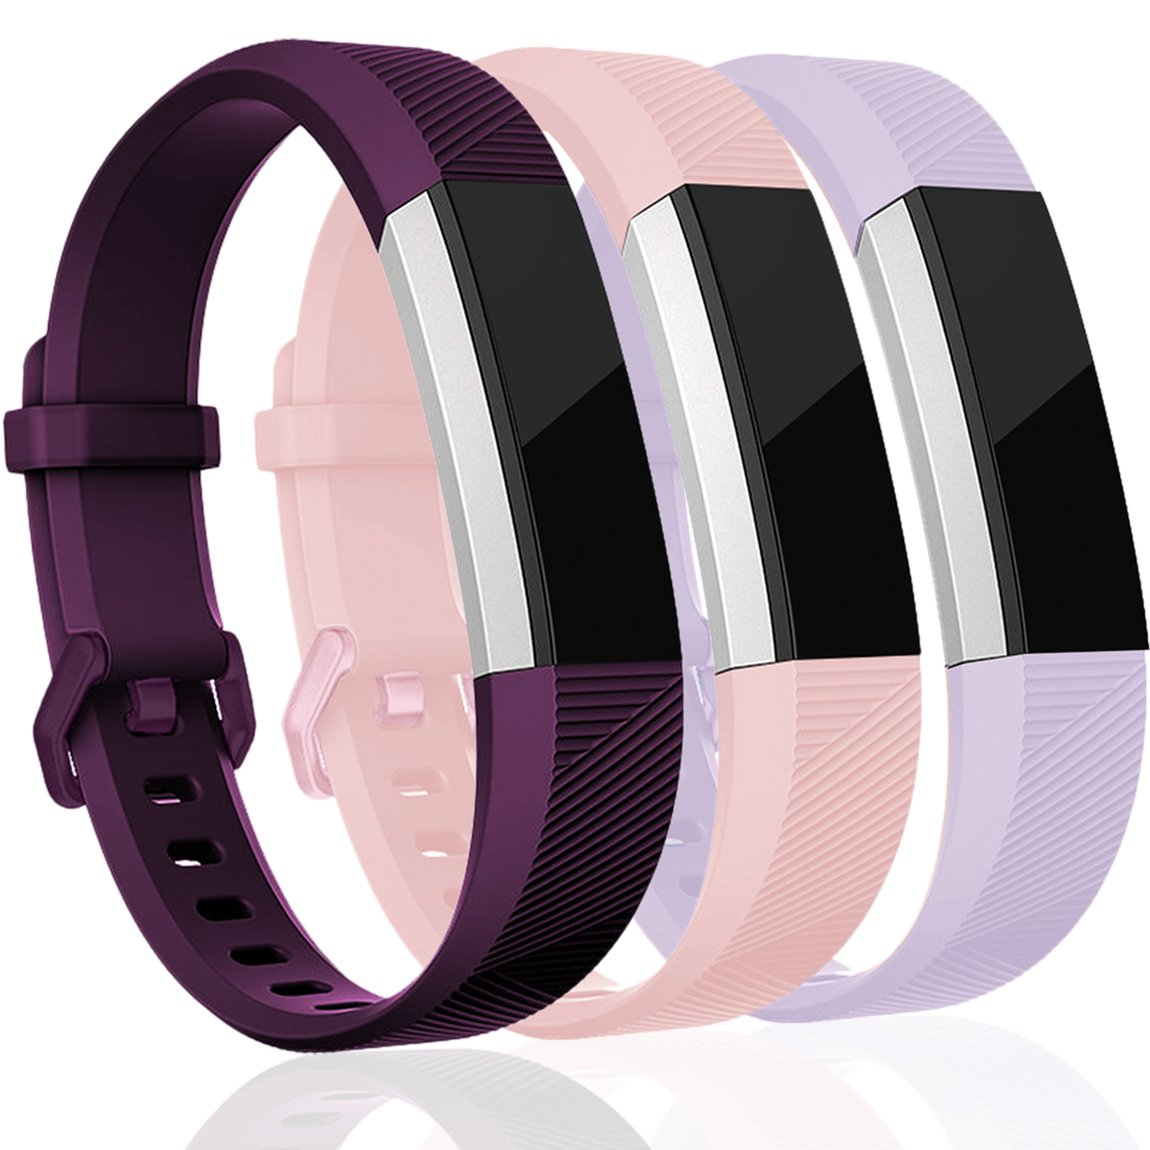 For Fitbit ALTAアルタHR、帯、maledan交換用アクセサリーWristbands for Fitbit ALTAアルタ、HR、Large Small 2スタイル B078J17526 Small|3 In 1-H 3 In 1-H Small